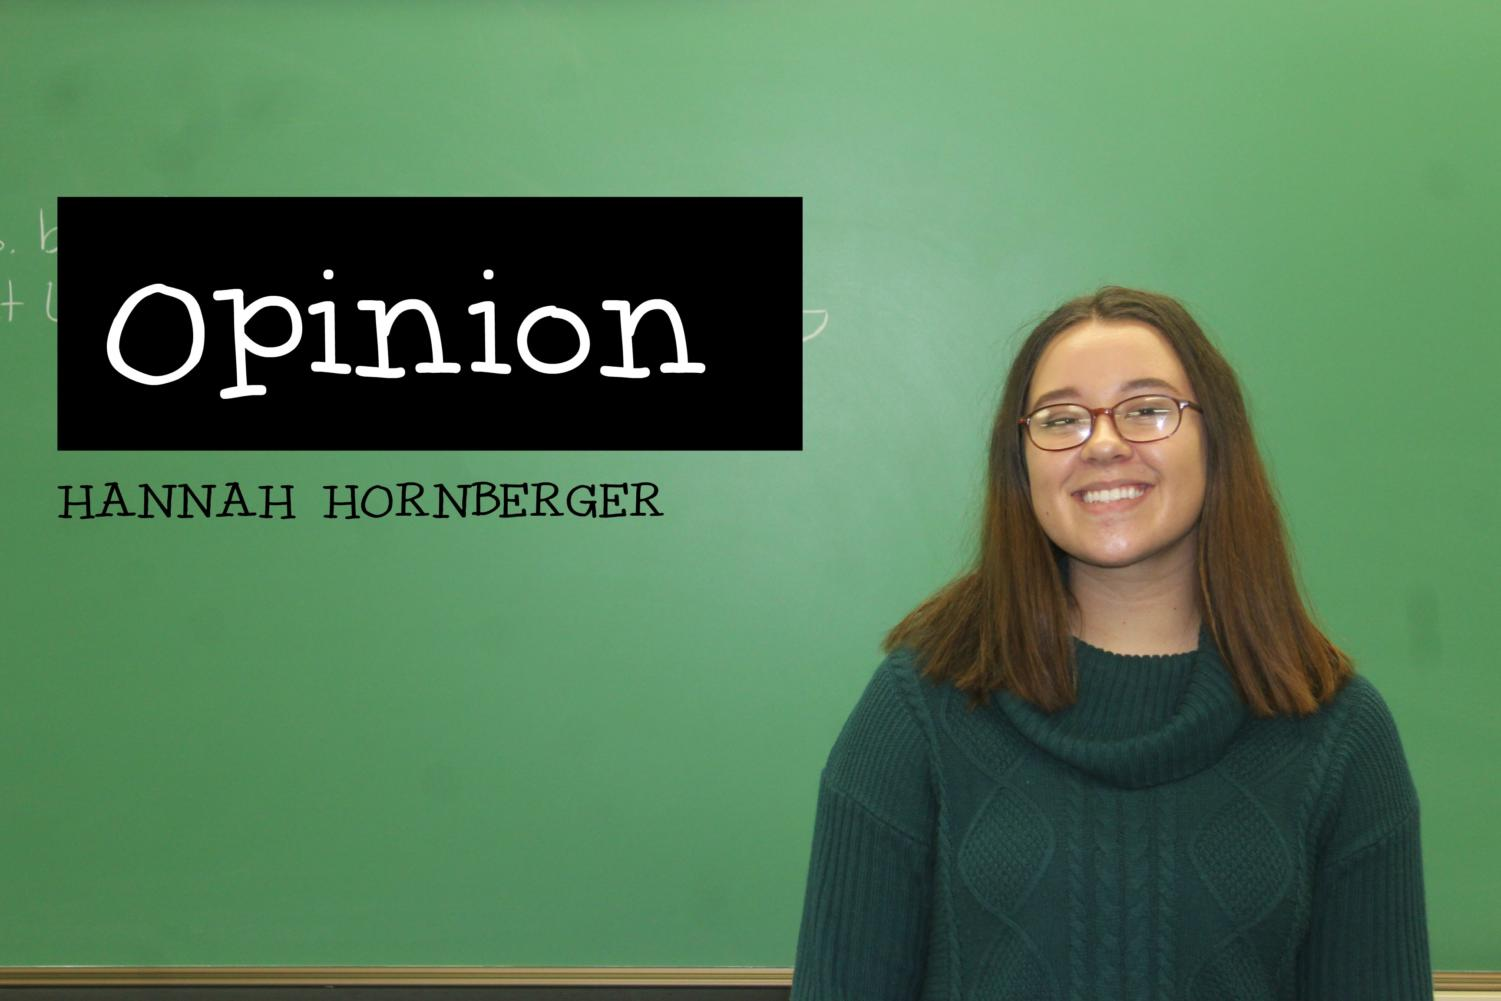 Hannah Hornberger is in favor of free speech, even if it's morally wrong;.